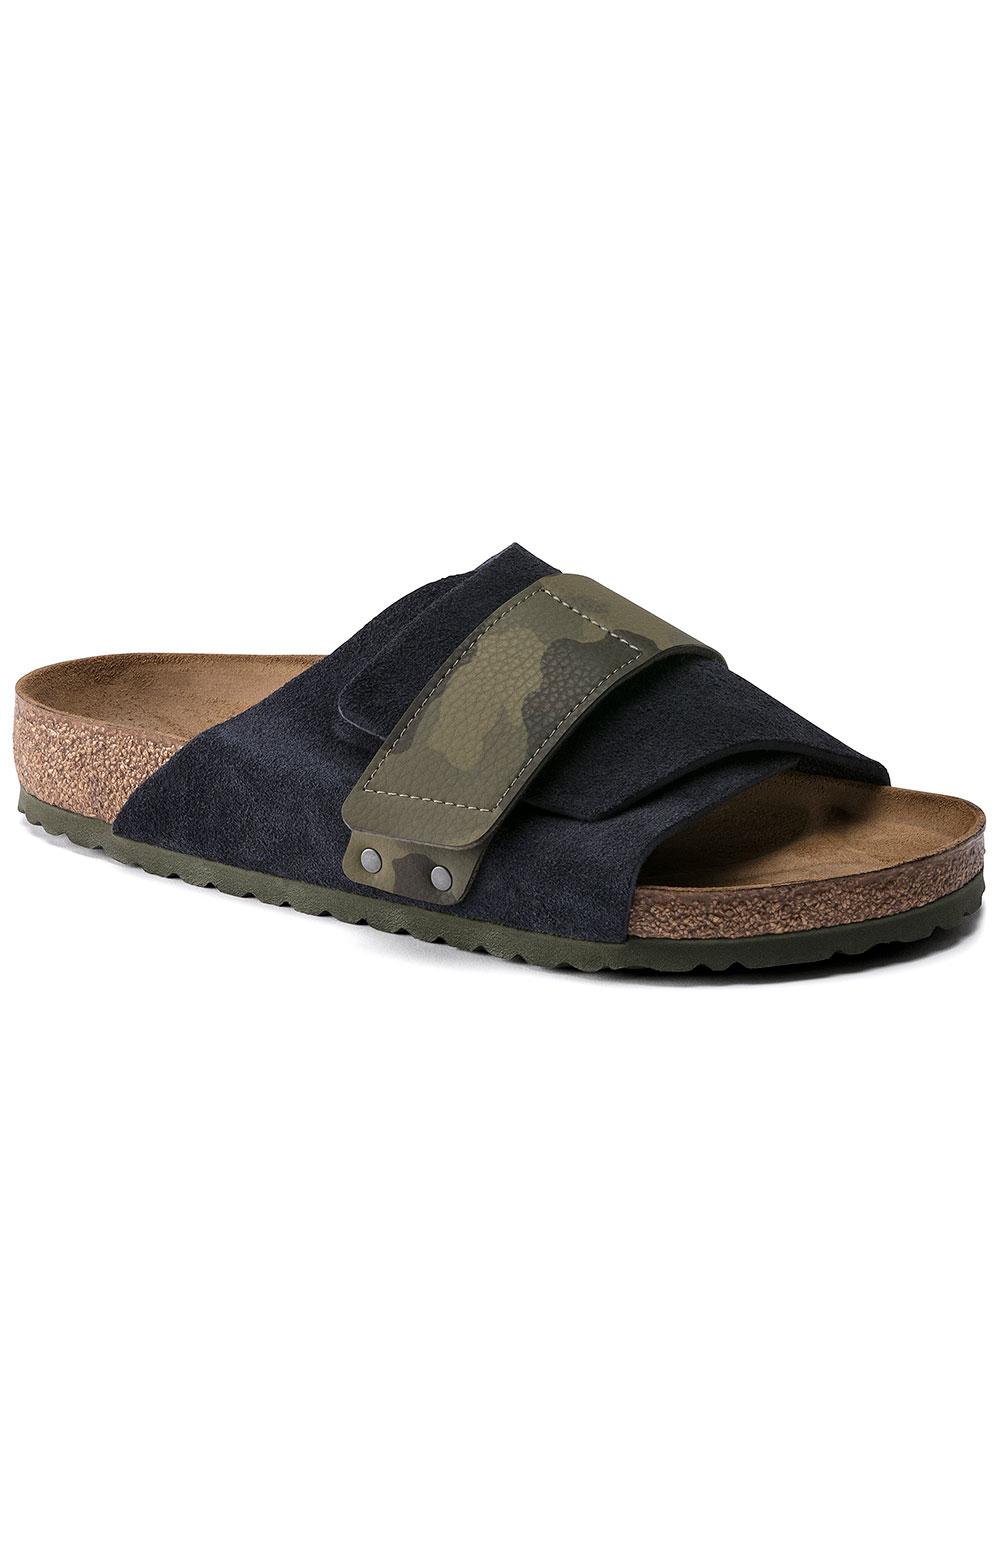 (1019737) Kyoto Sandals - Midnight Camo